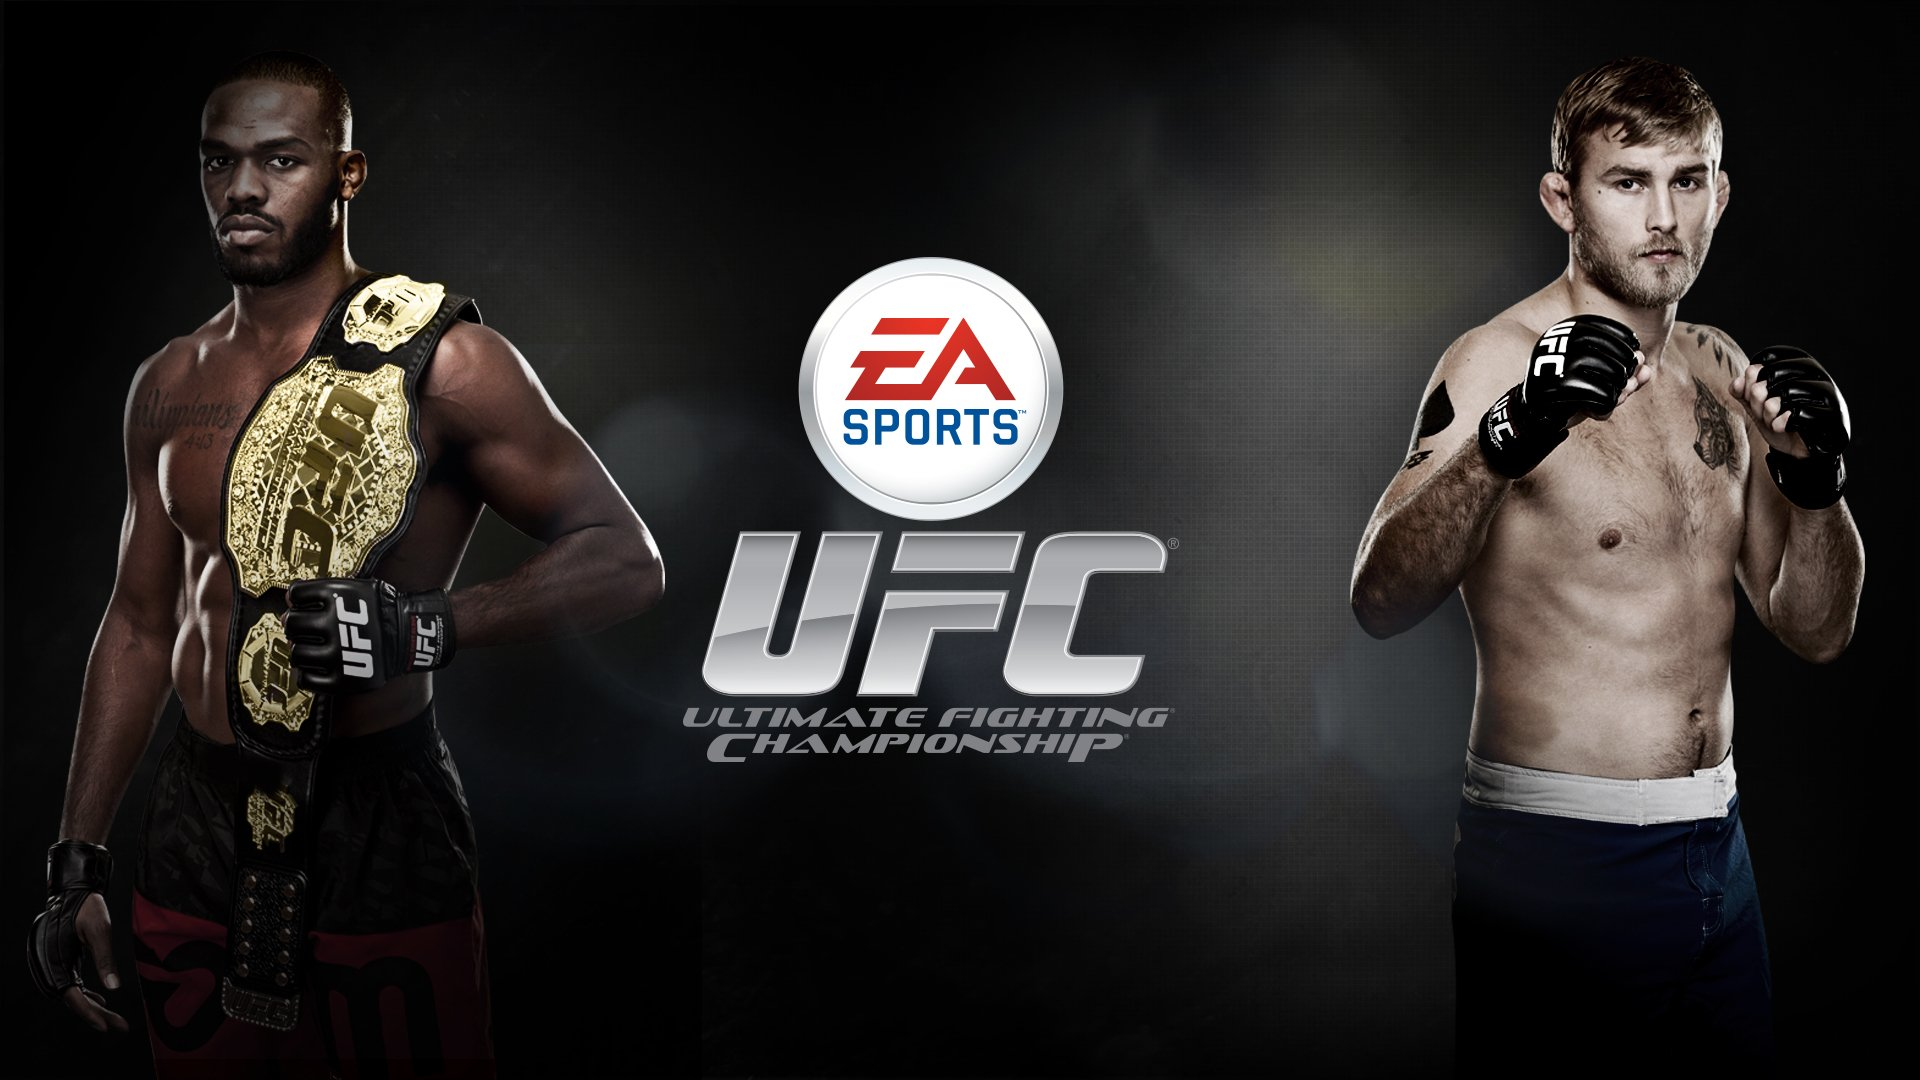 1 ea sports ufc hd wallpapers background images wallpaper abyss hd wallpaper background image id516940 voltagebd Image collections